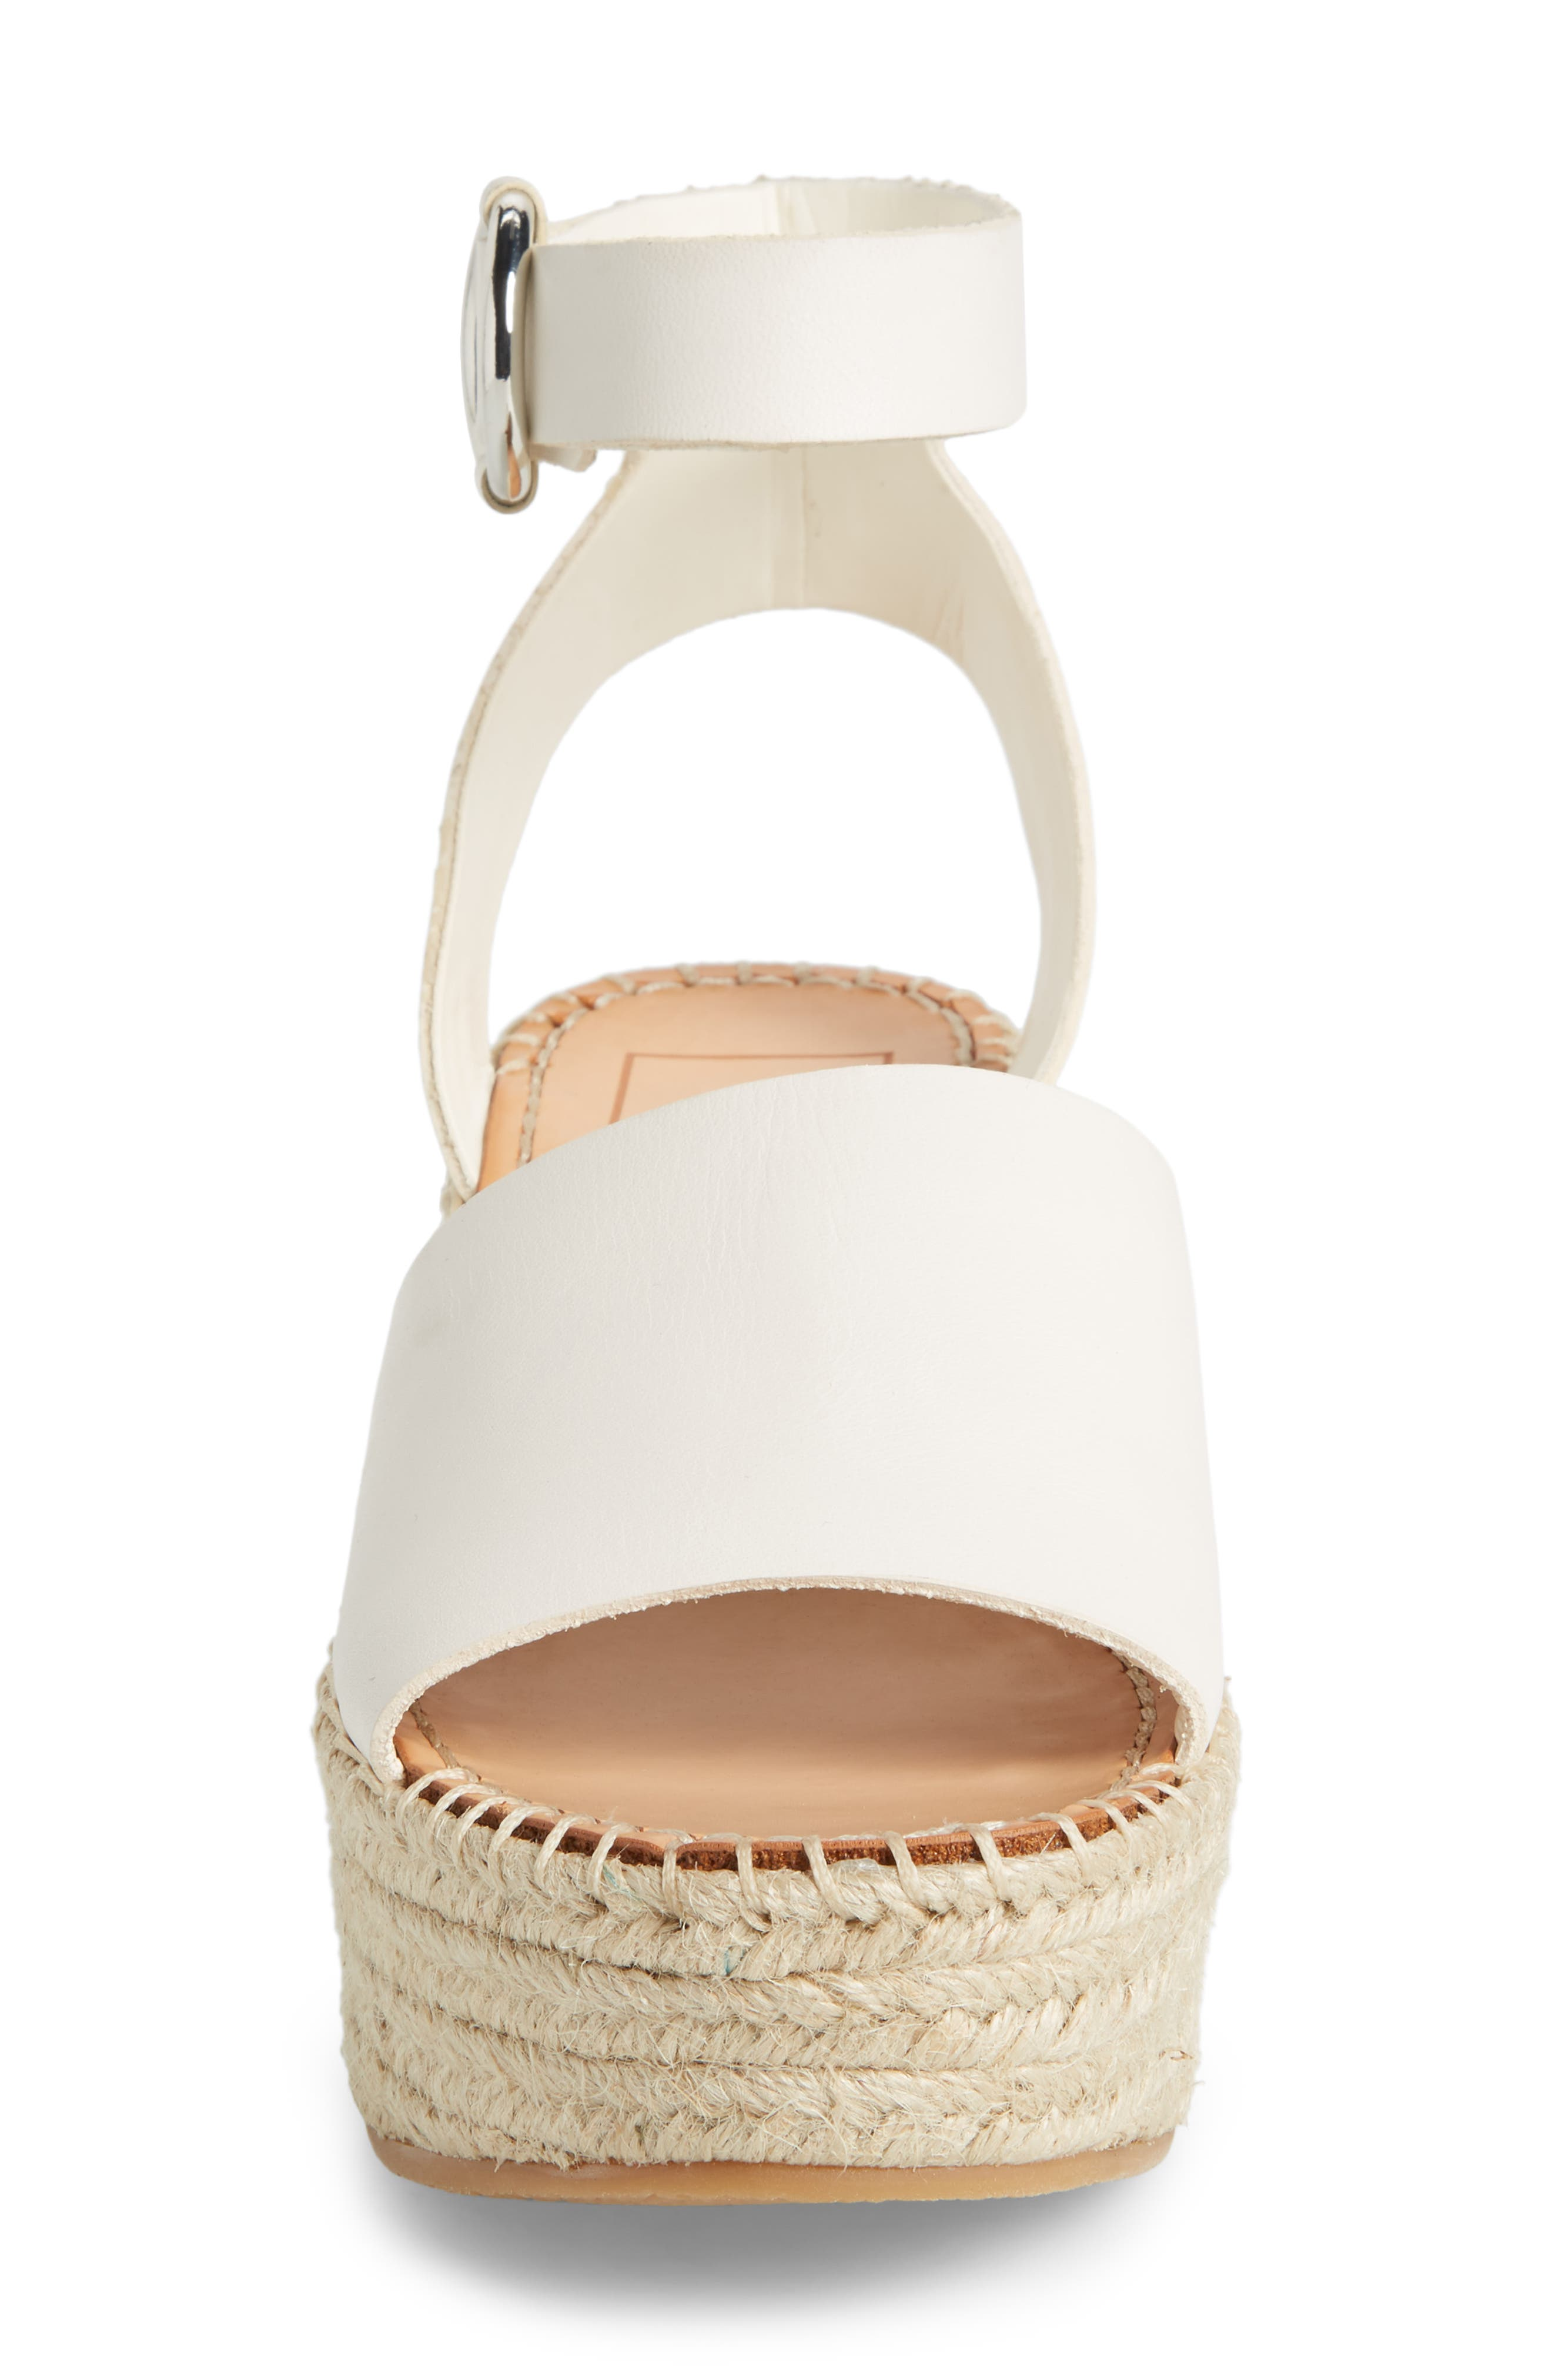 DOLCE VITA, Lesly Espadrille Platform Sandal, Alternate thumbnail 4, color, OFF WHITE